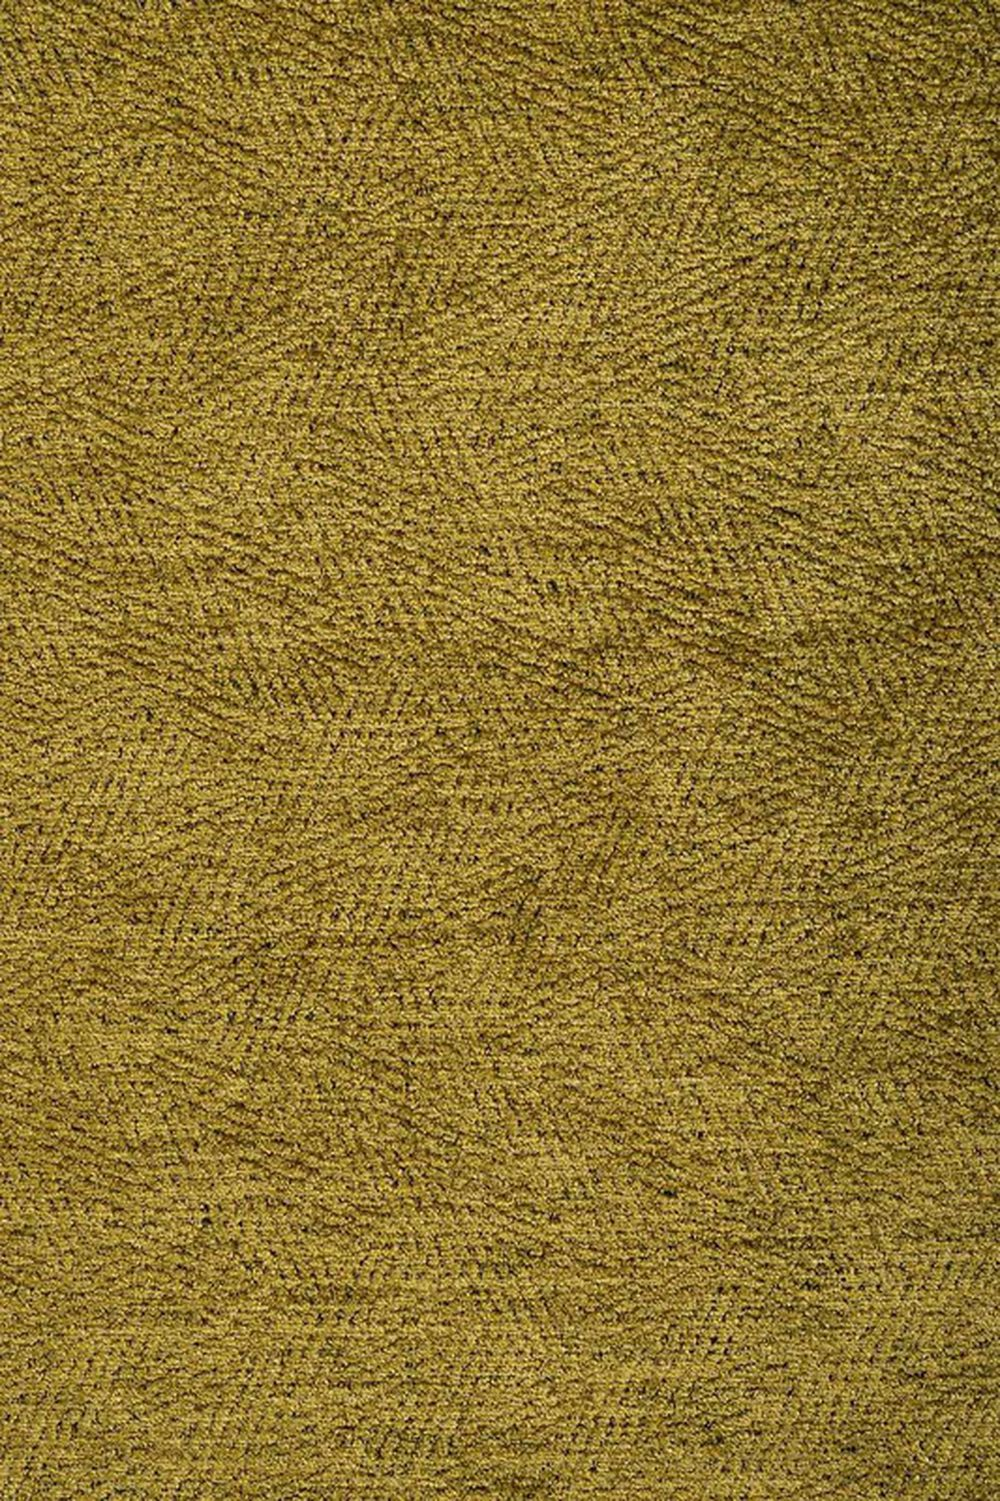 Photo of the fabric Contexture Sulphur swatch by James Dunlop. Use for Upholstery Heavy Duty, Accessory. Style of Geometric, Plain, Texture